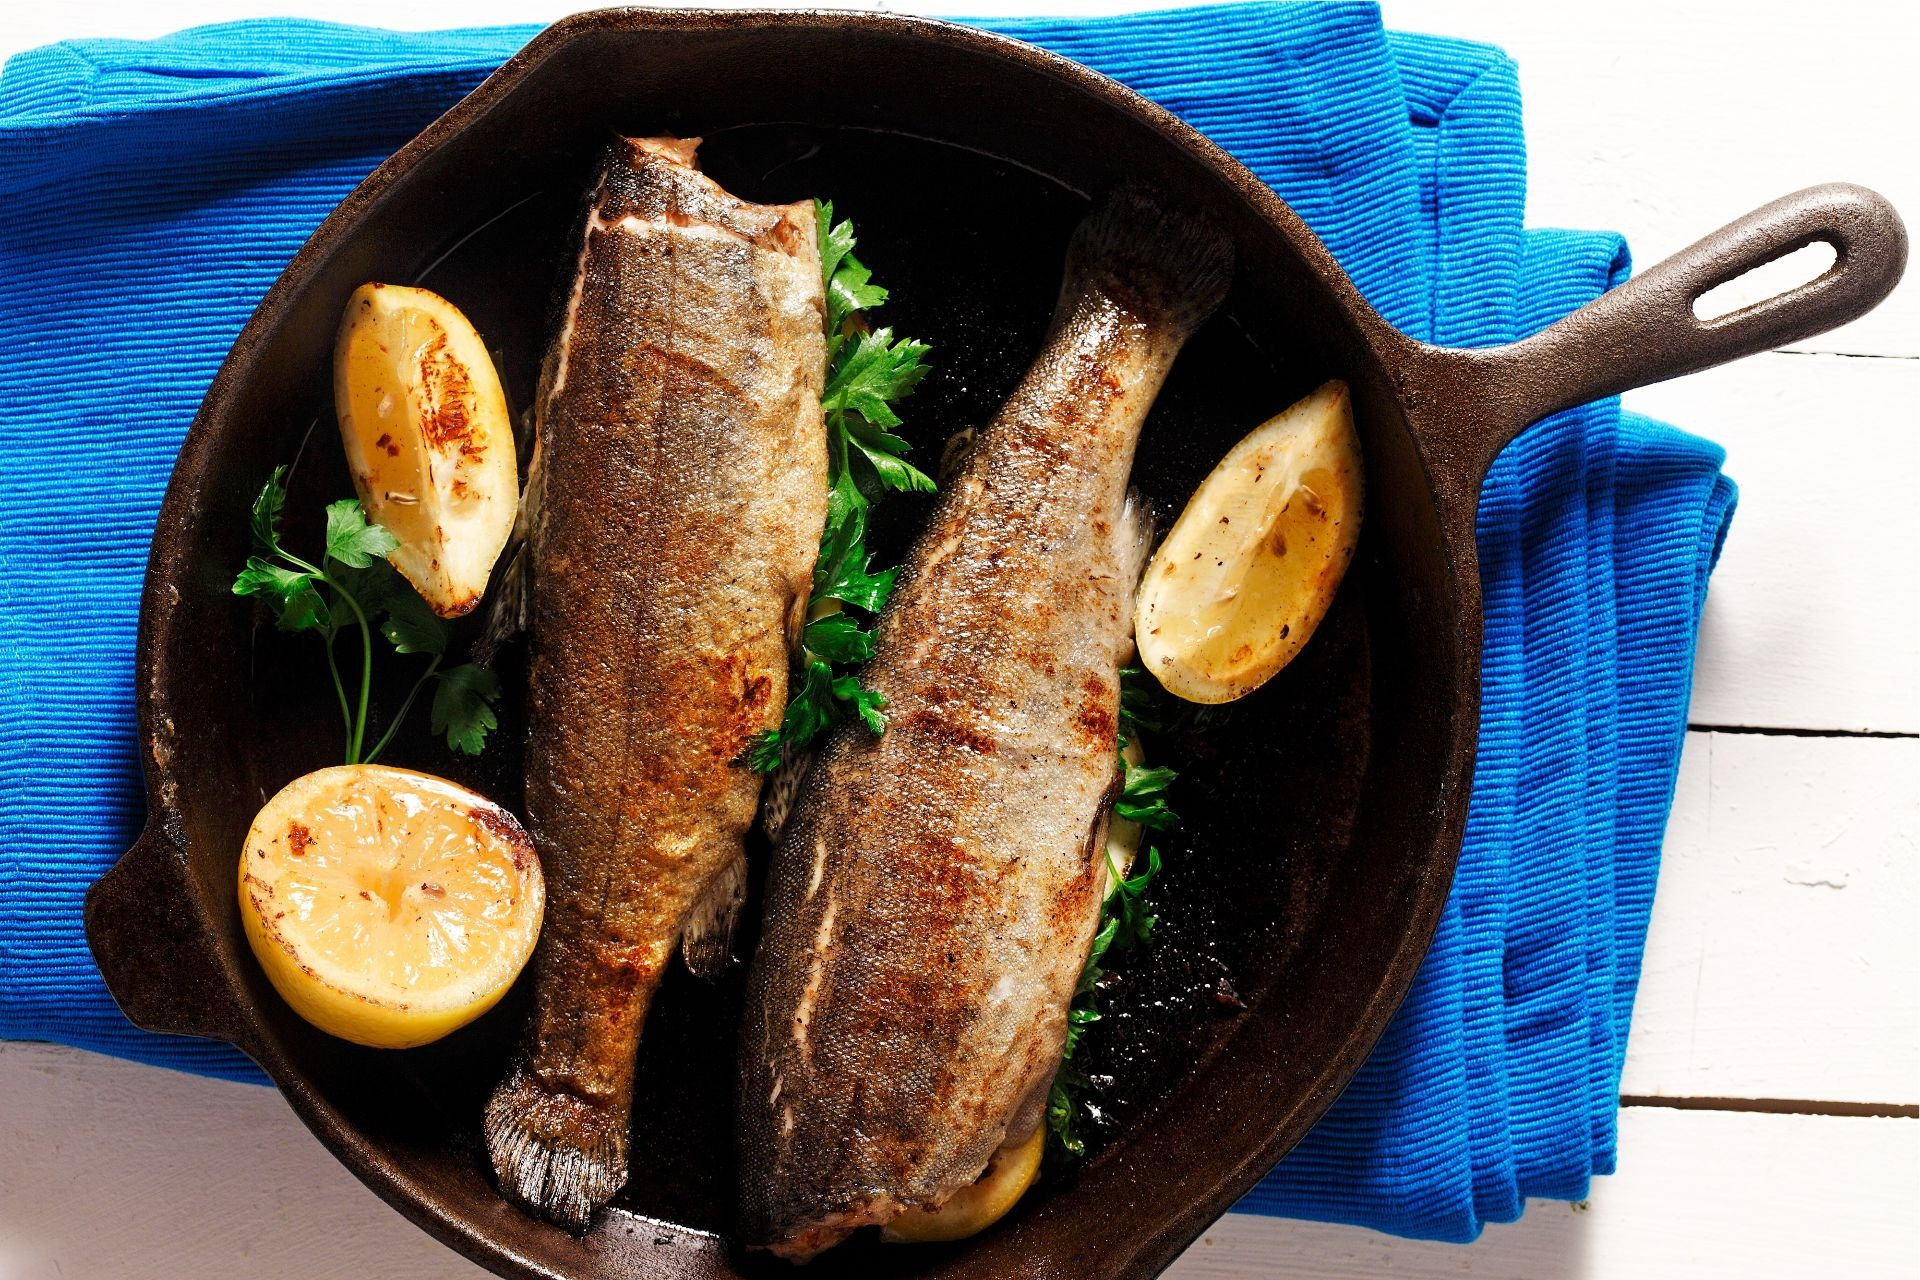 Two pieces of trout in cast iron skillet with sliced lemon and fresh parsley.